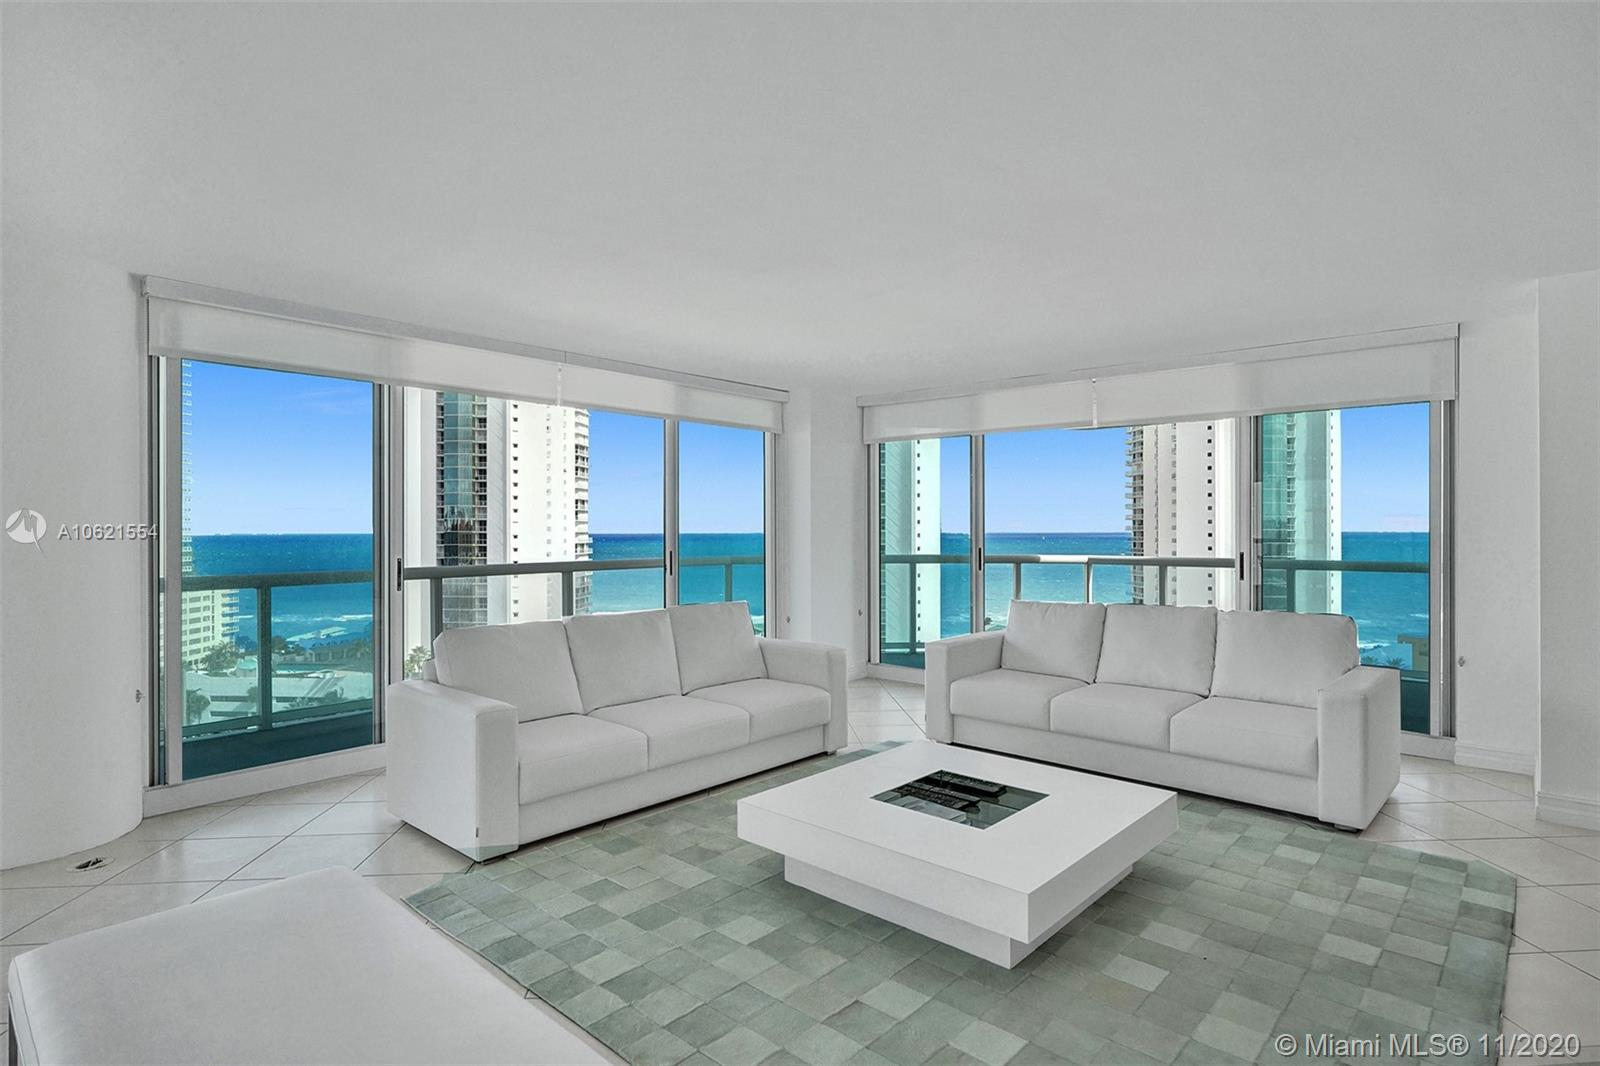 16400 Collins Ave 1641, Sunny Isles Beach, FL 33160